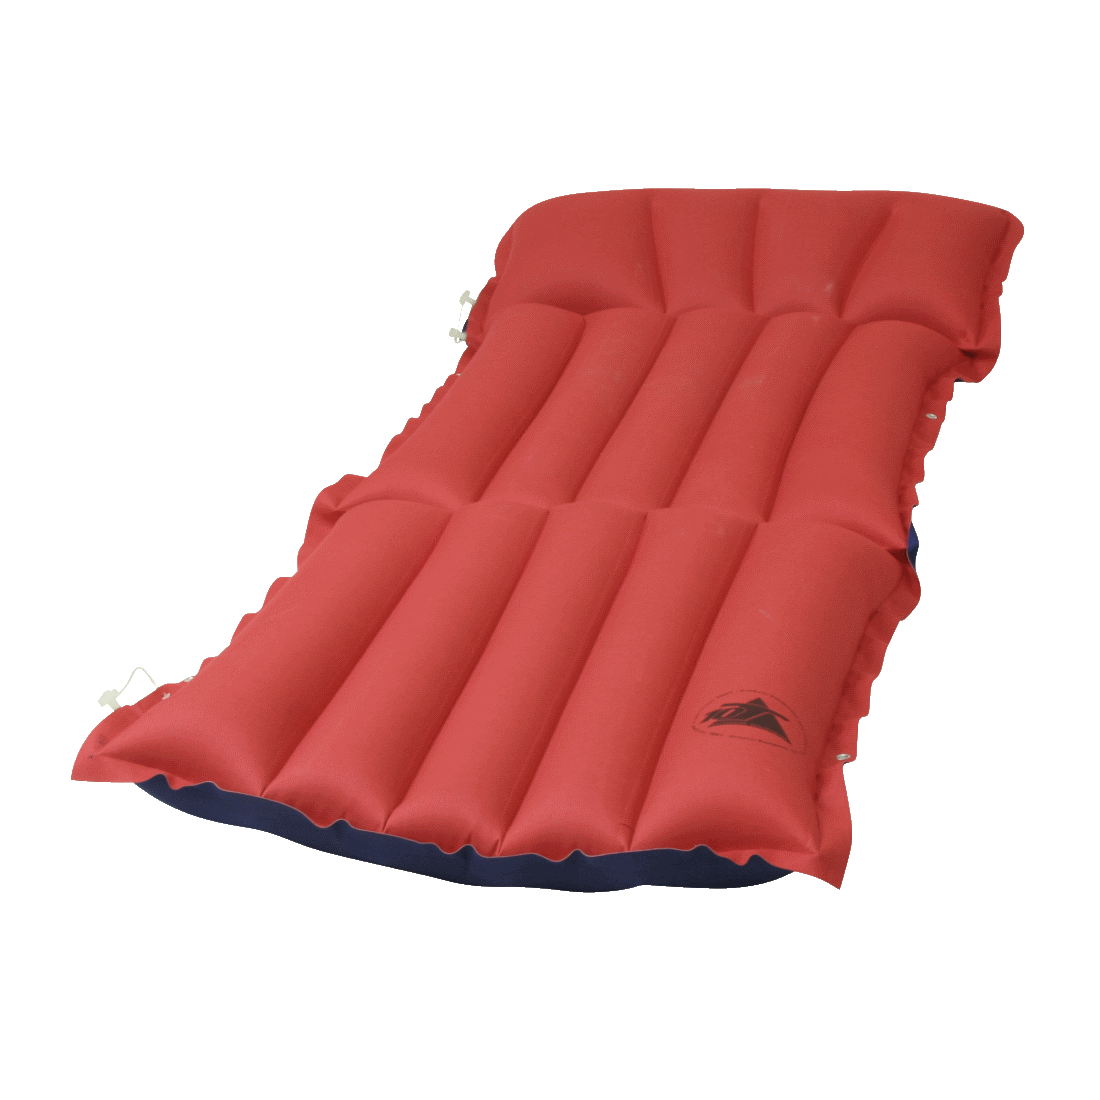 10t ruby sit lie cotton air mattress sun lounger with a top and backrest function 186x60x13. Black Bedroom Furniture Sets. Home Design Ideas